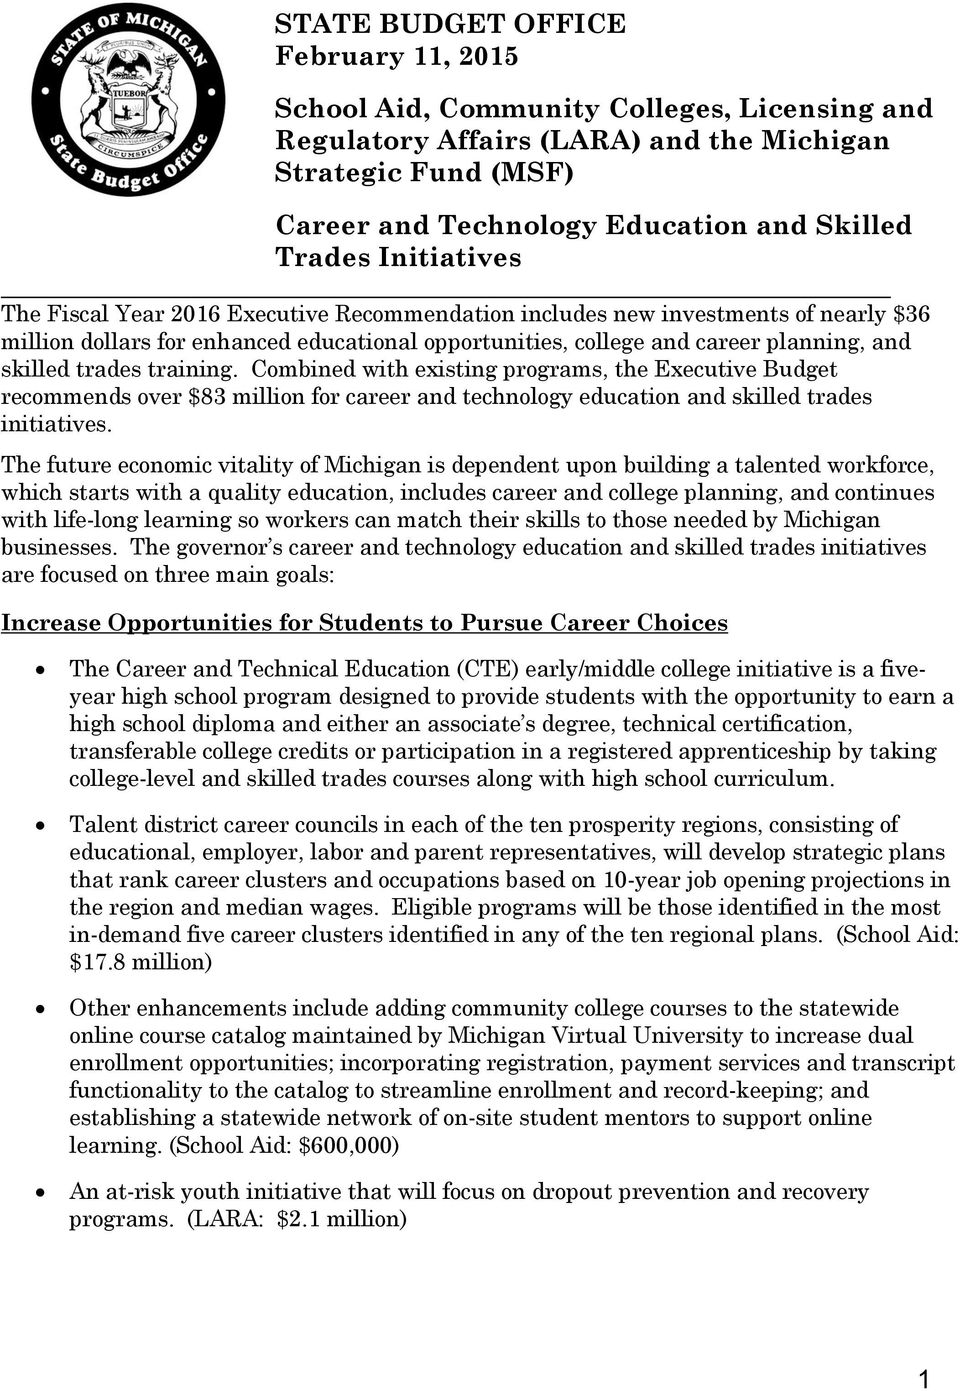 trades training. Combined with existing programs, the Executive Budget recommends over $83 million for career and technology education and skilled trades initiatives.